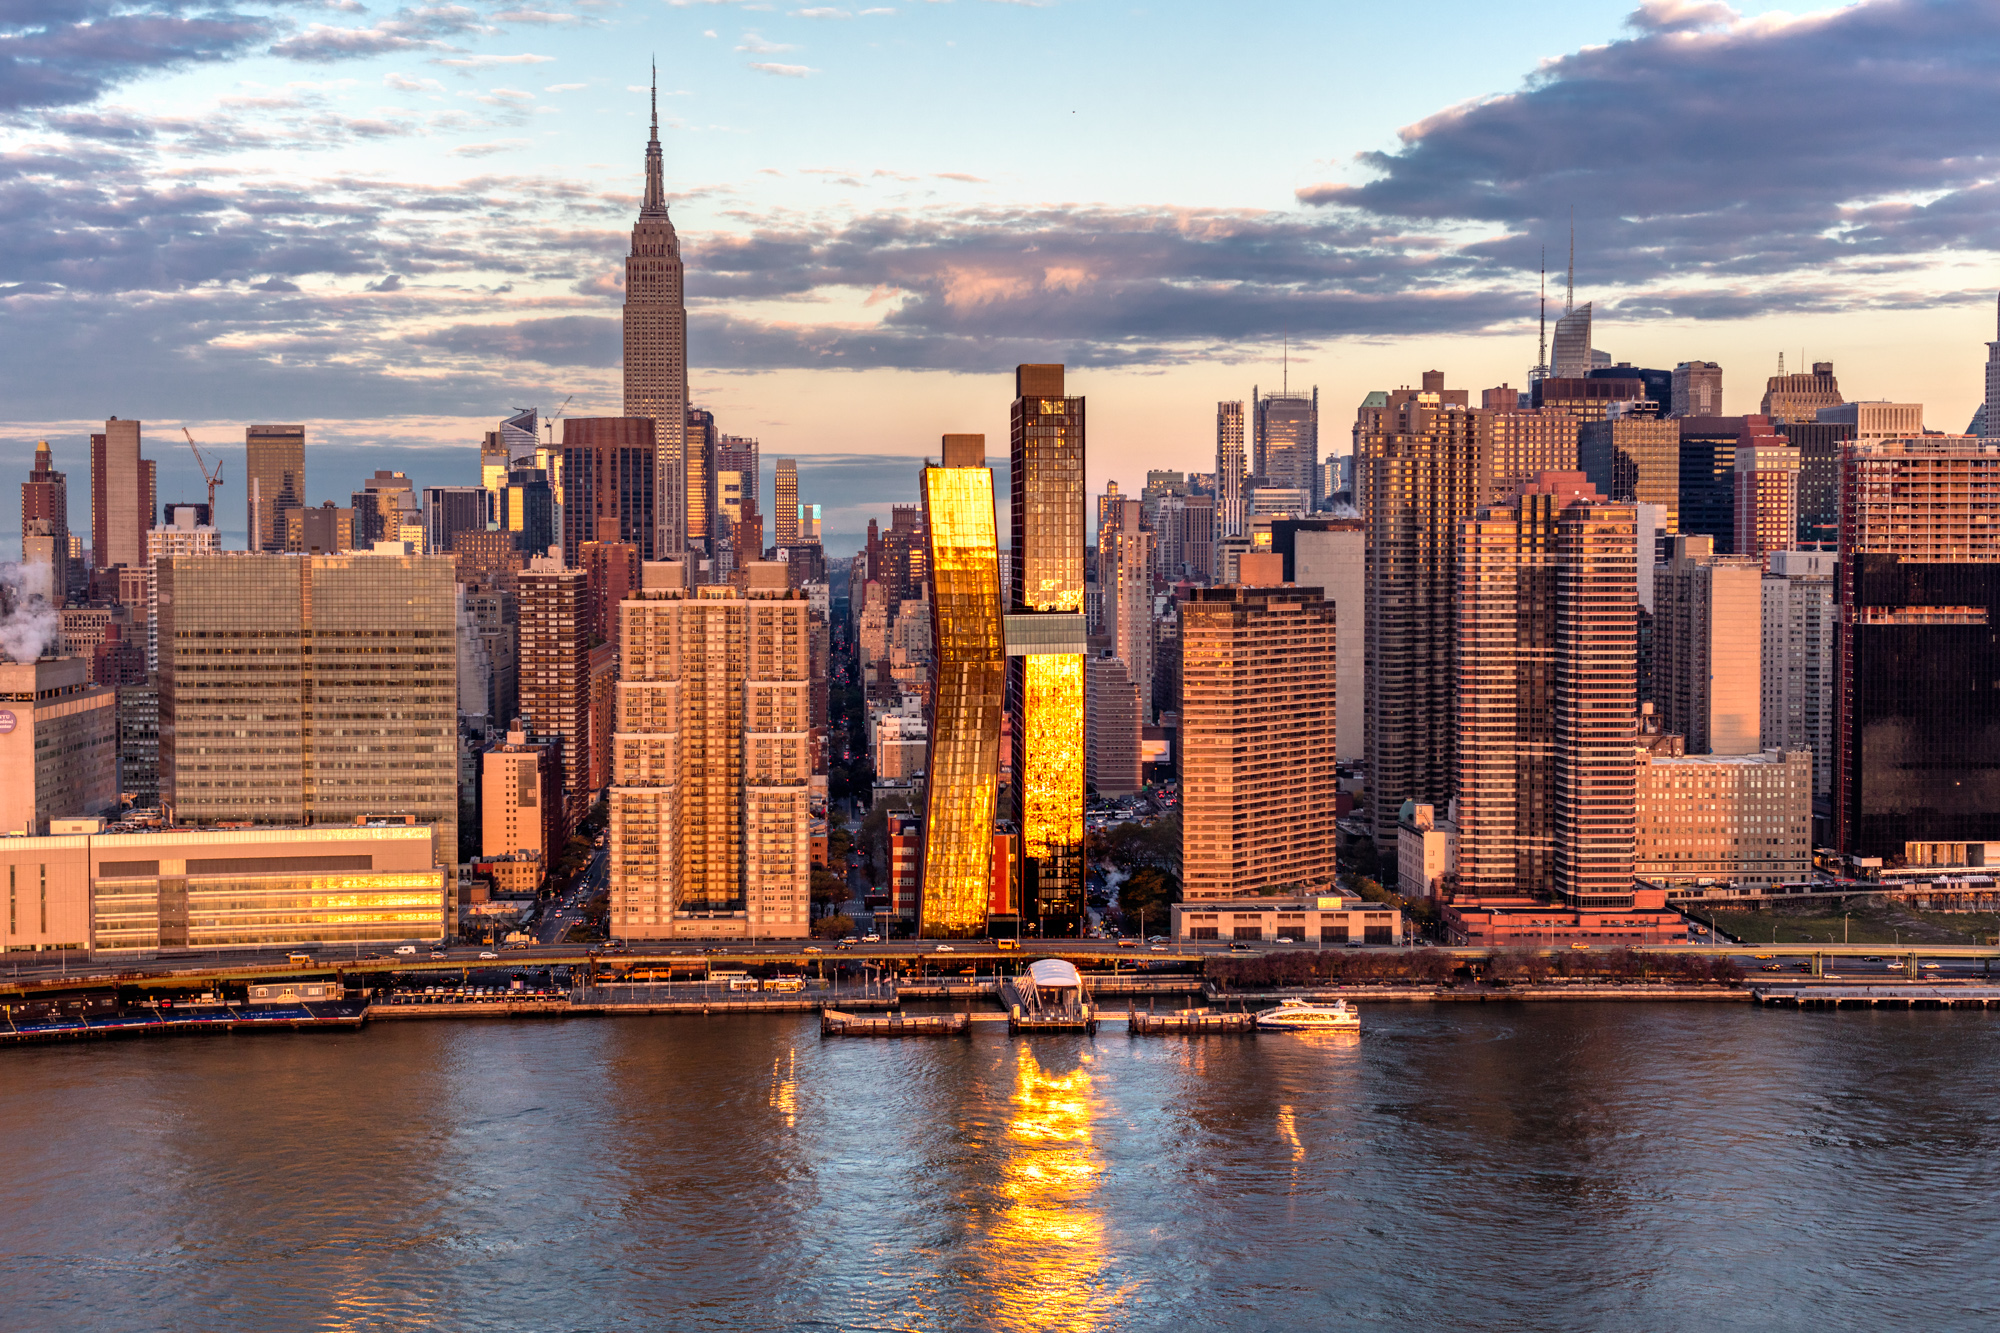 JDS Development Group's American Copper Buildings Opens The First Skybridge In NYC In 80 Years